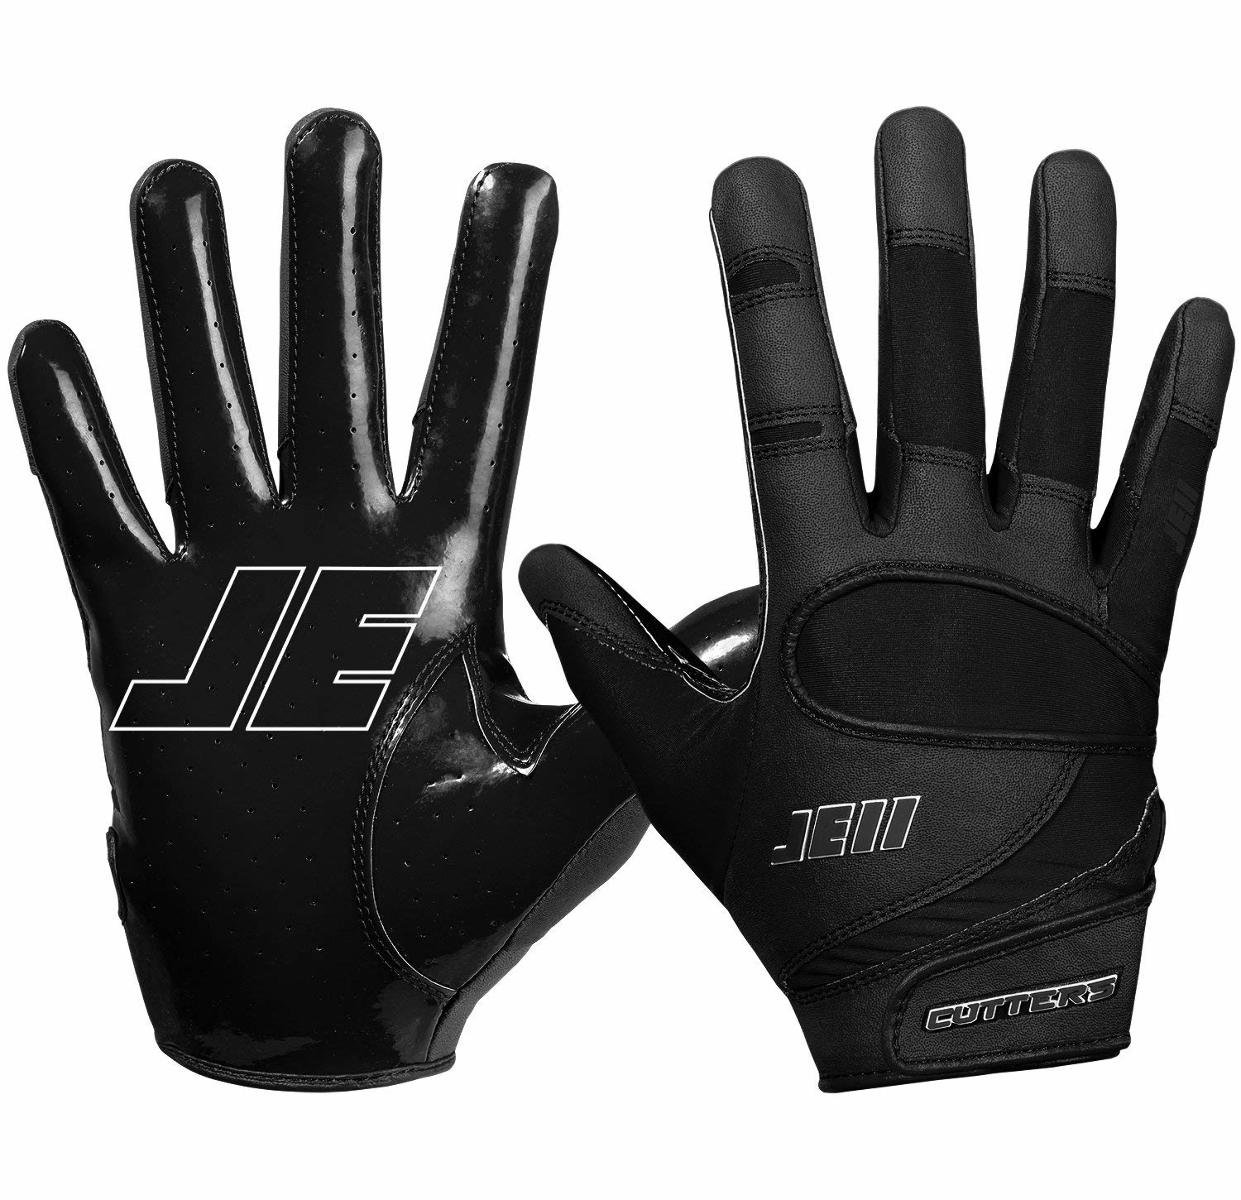 Cutters Gloves Signature Gloves, Black, Small